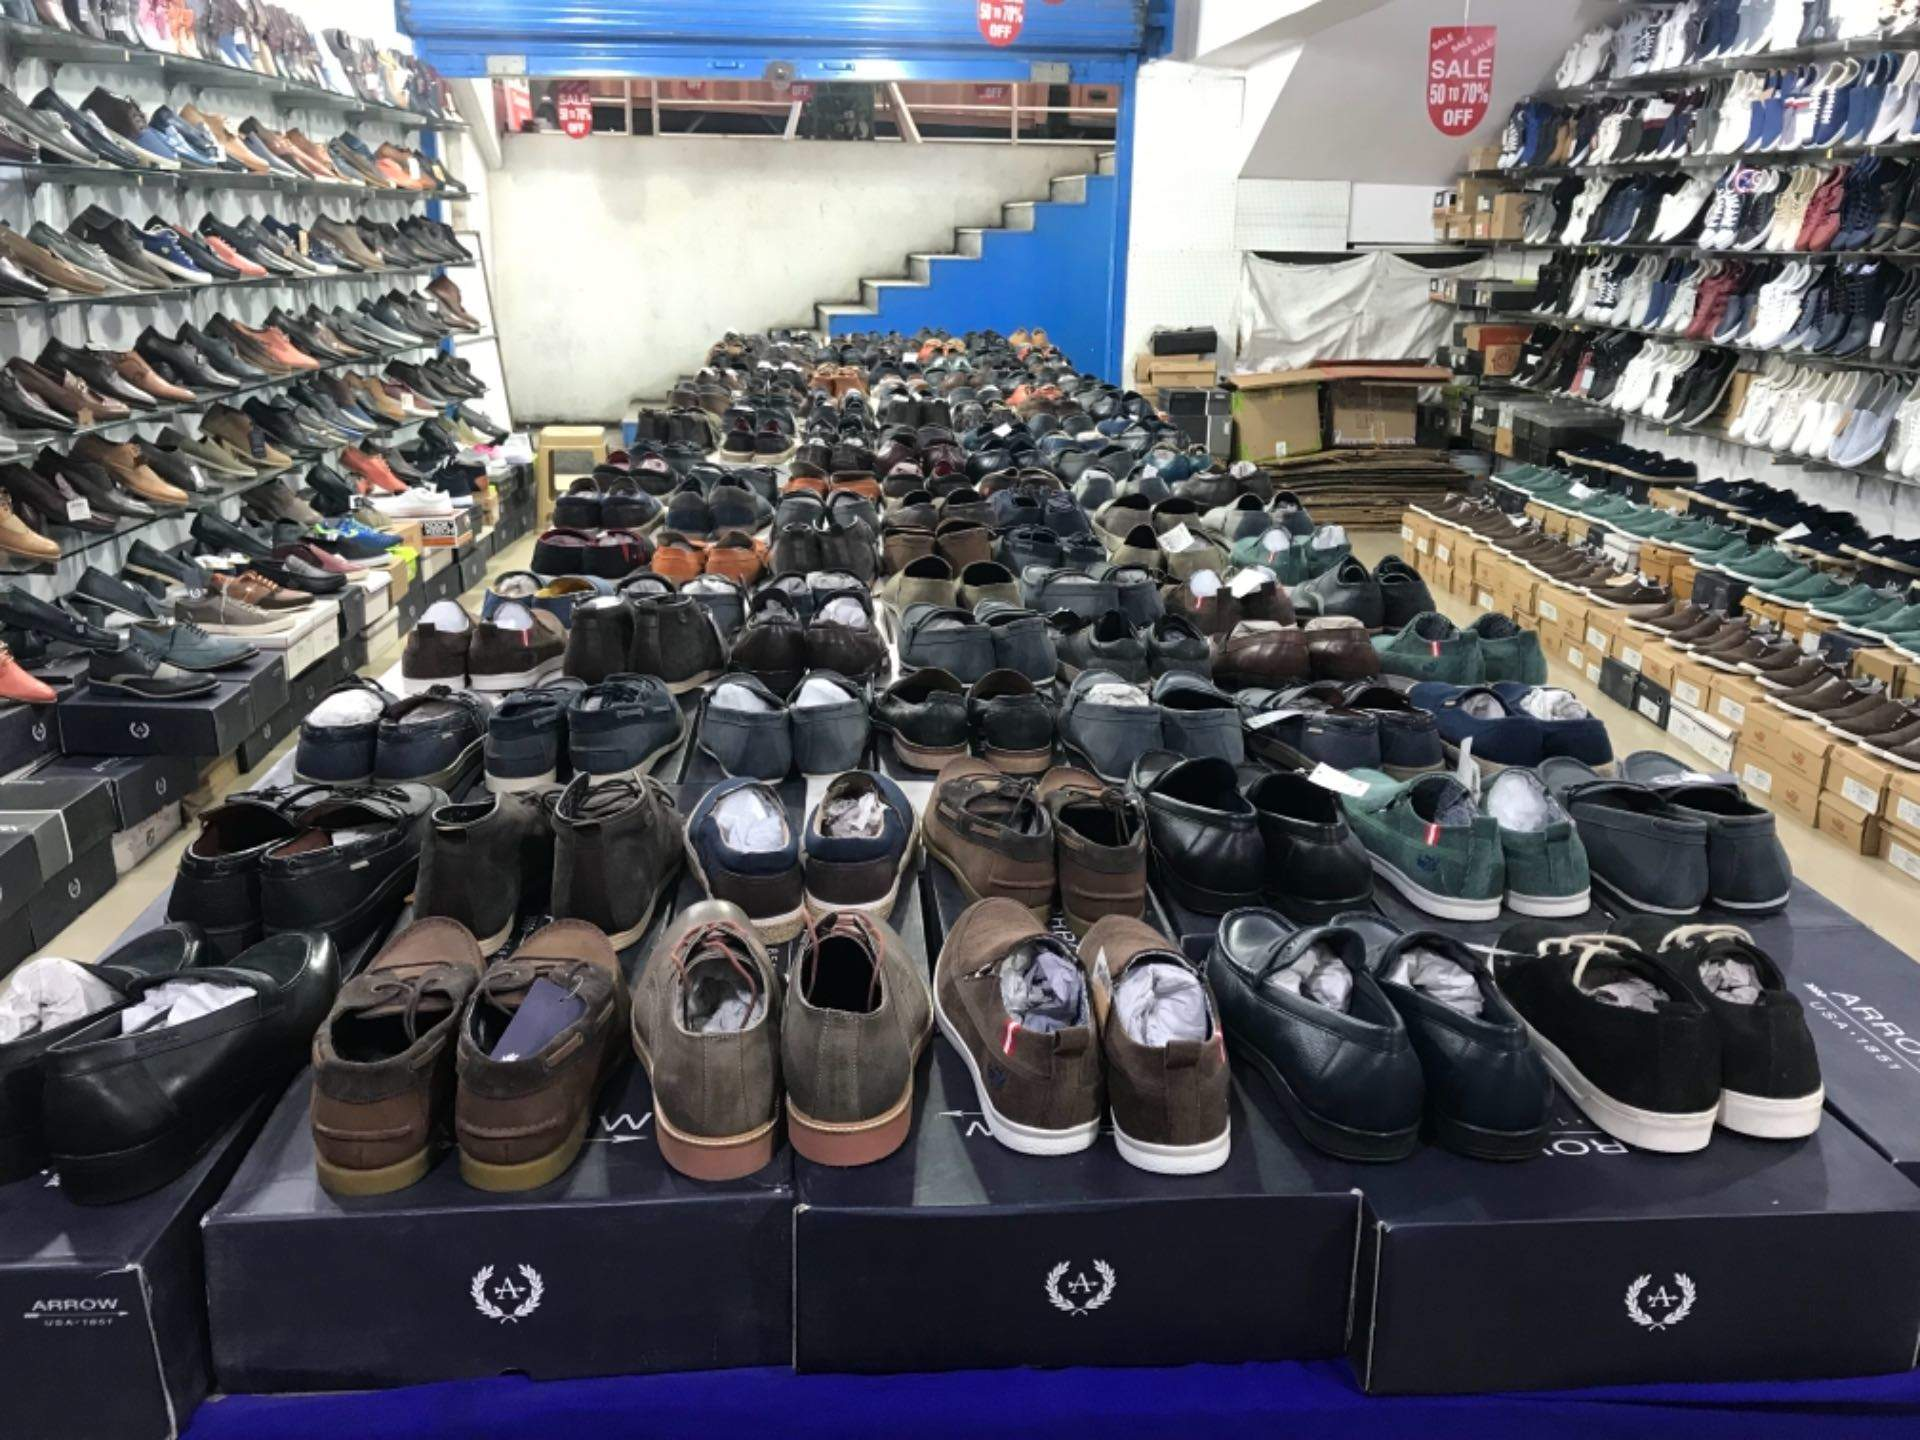 The Shoe Factory, BTM Layout 2nd Stage - Shoe Dealers in Bangalore -  Justdial